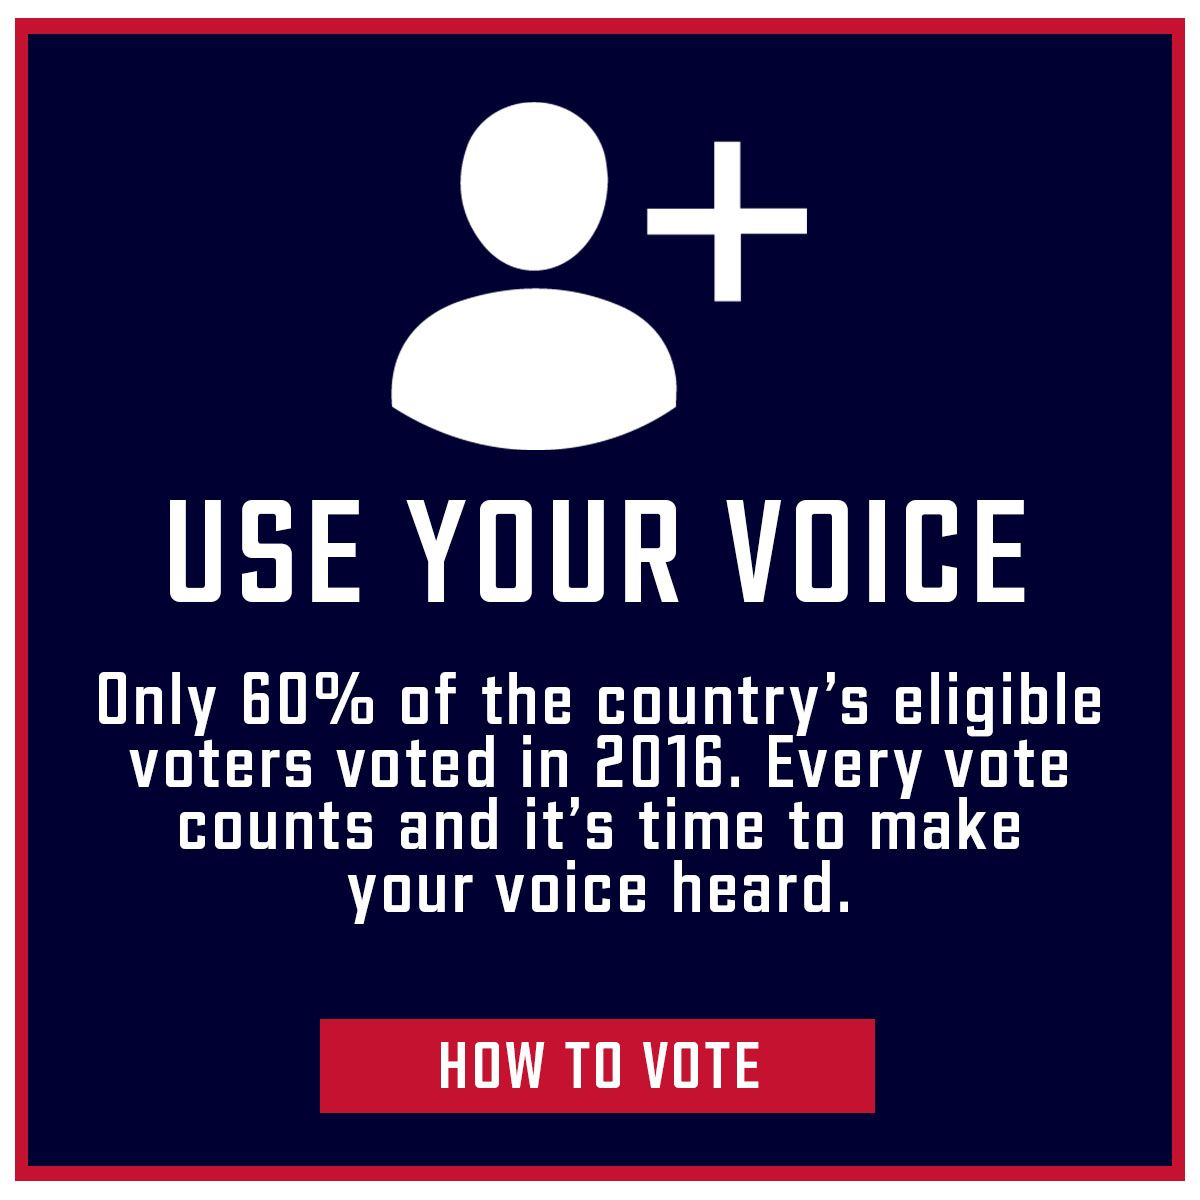 Use Your Voice. Only 60% of the country's eligible voters voted in 2016. Every vote counts and it's time to make your voice heard. How to Vote